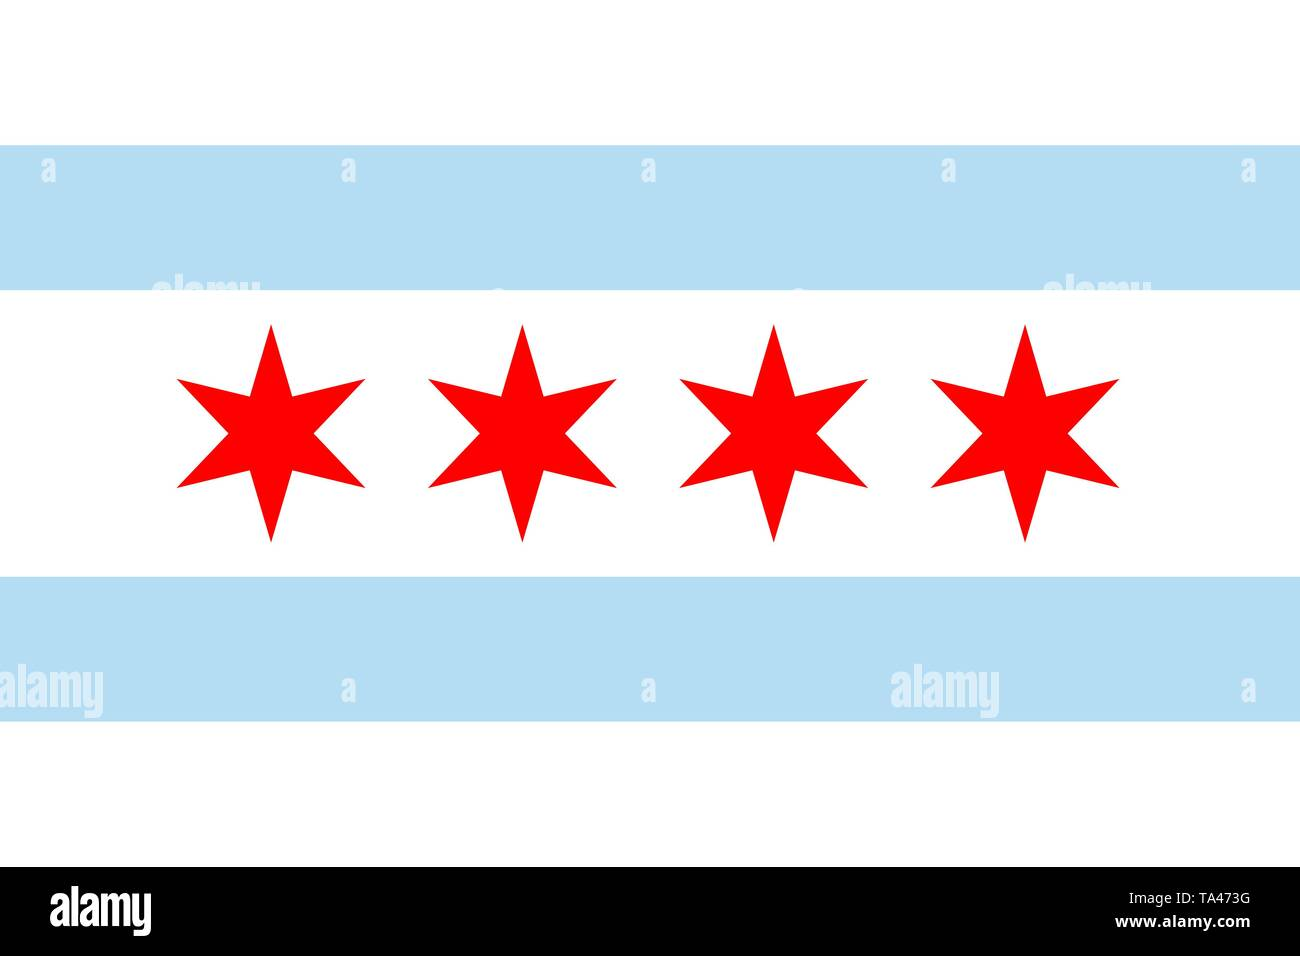 Chicago vector flag. Illinois state. United States of America. Windy City, Chi-Town, City of Big Shoulders, Second City, My Kind of Town - Stock Vector